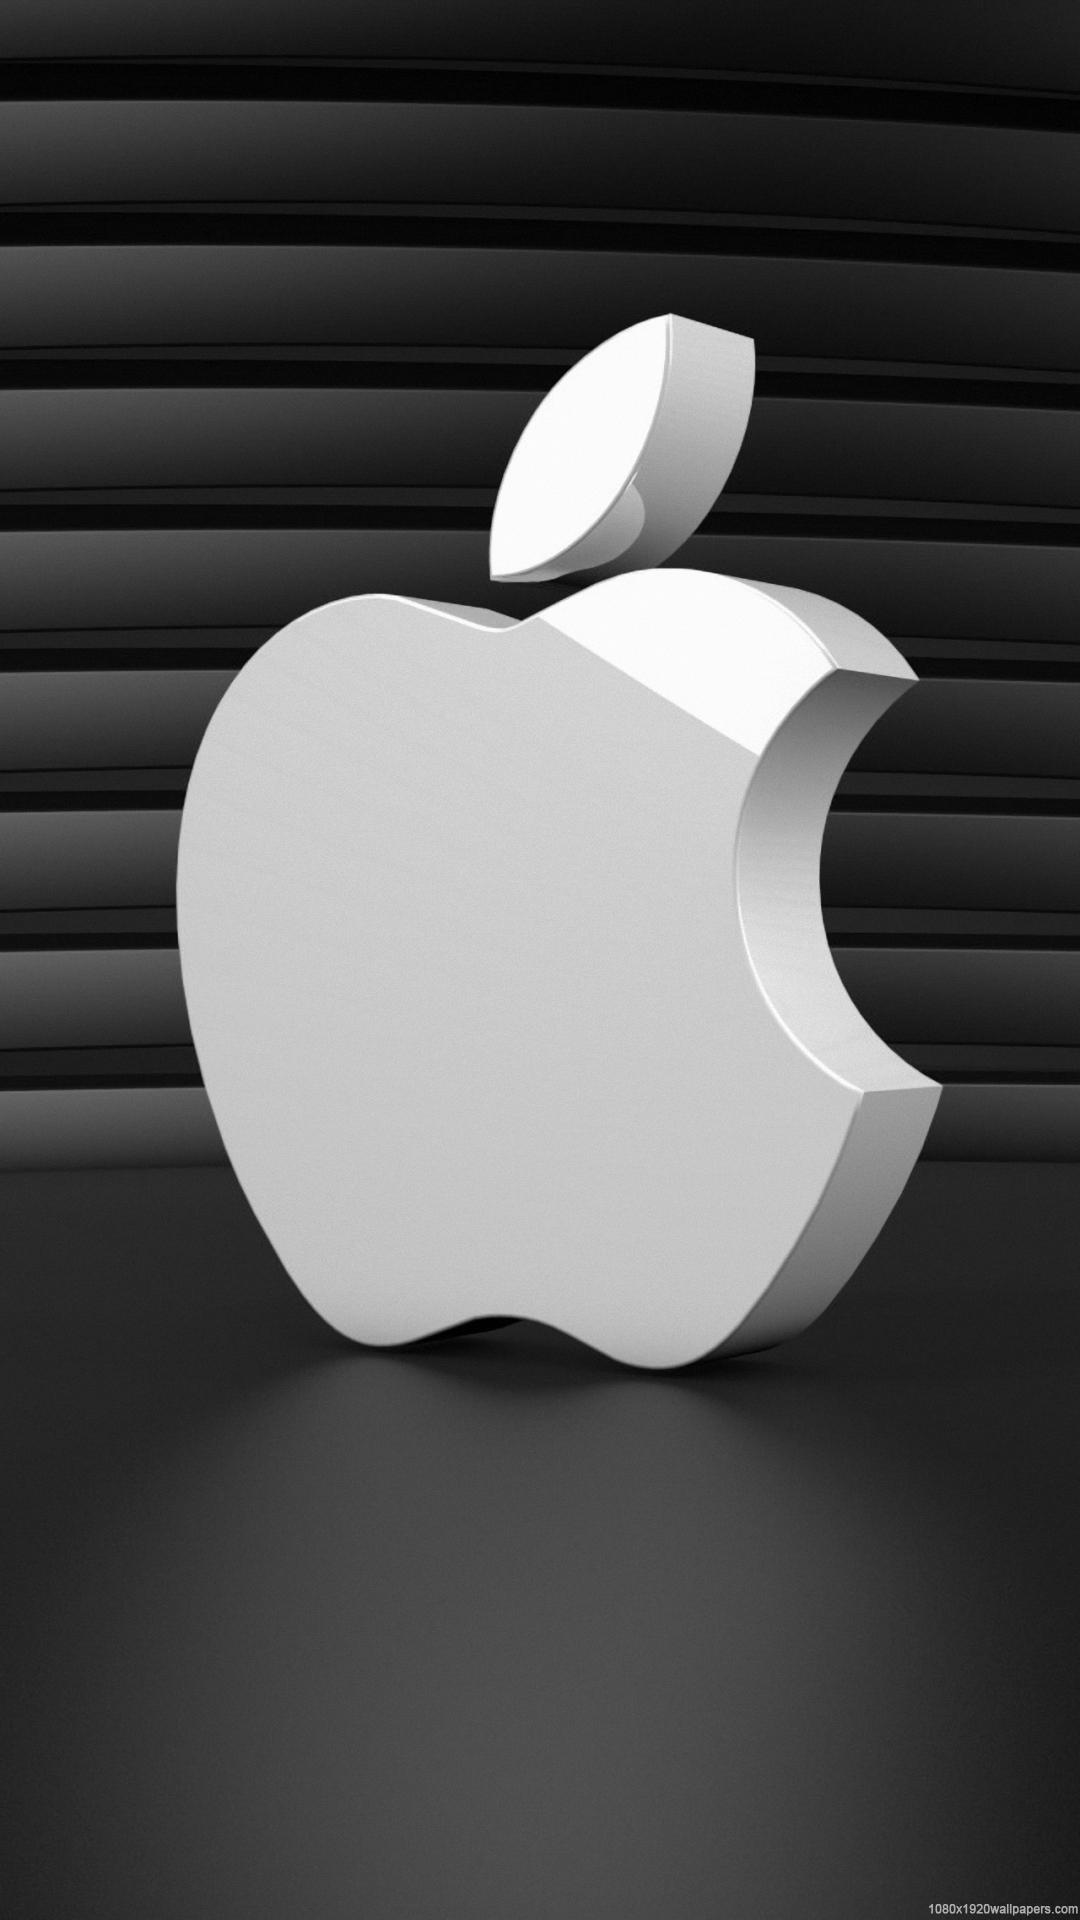 Iphone Hd 3D Wallpapers